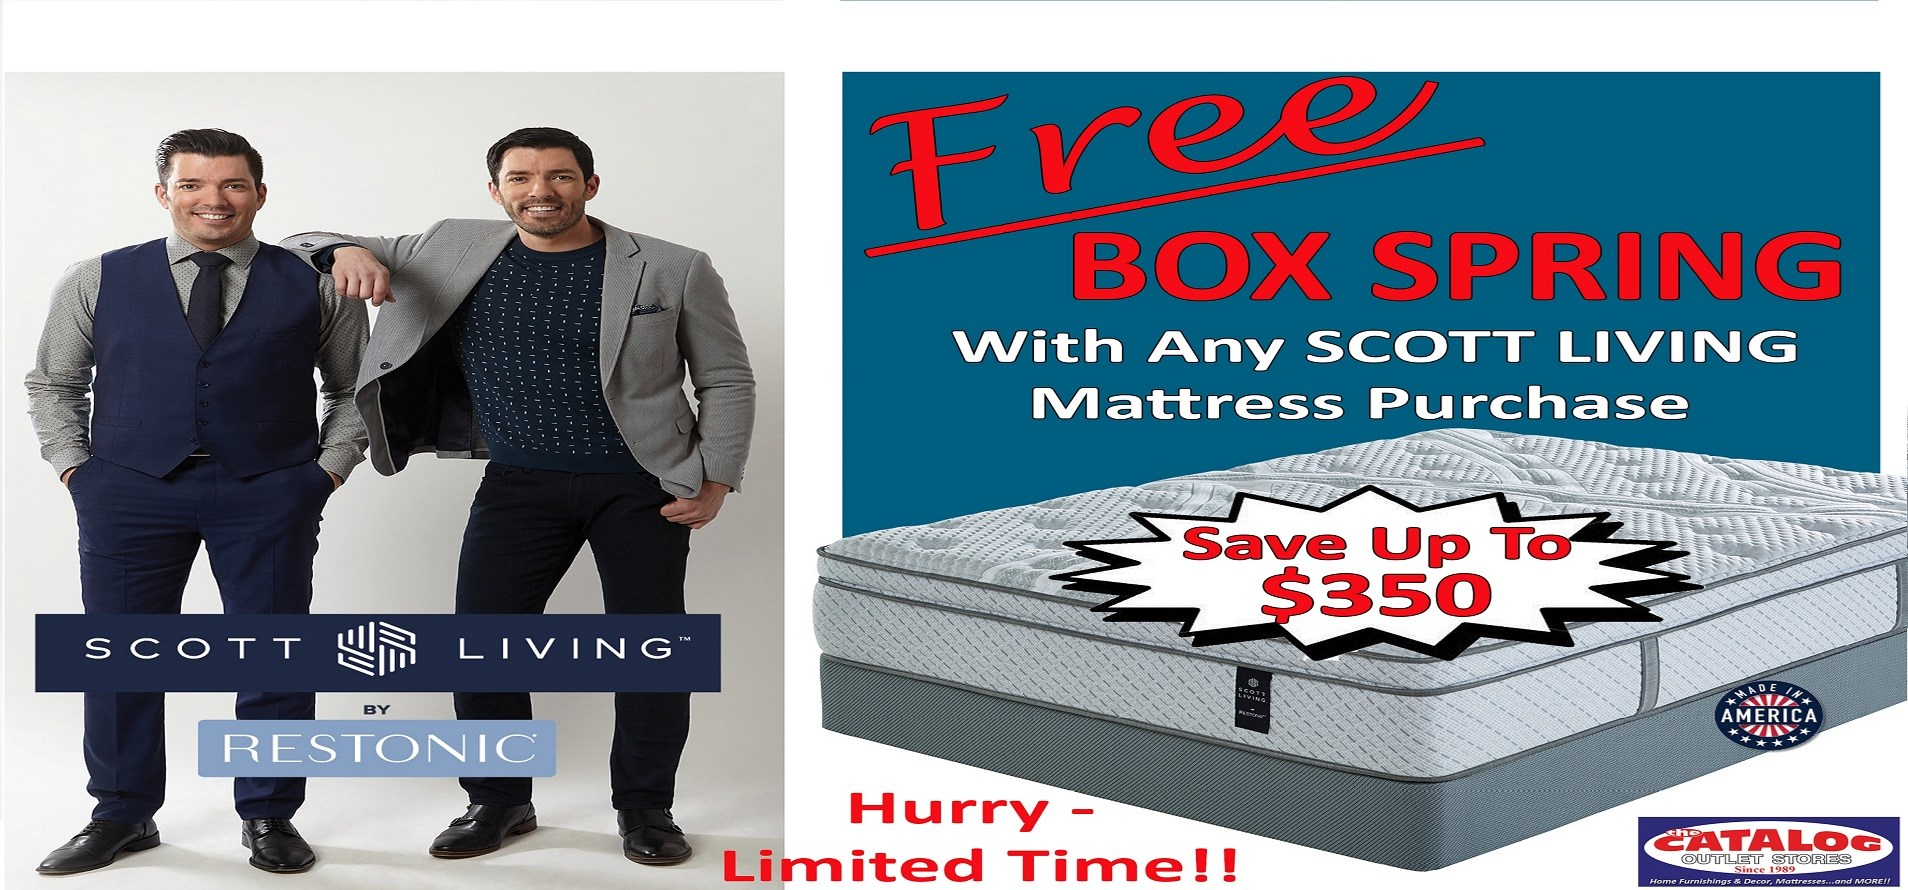 Free Box Spring With Scott Living Purchase